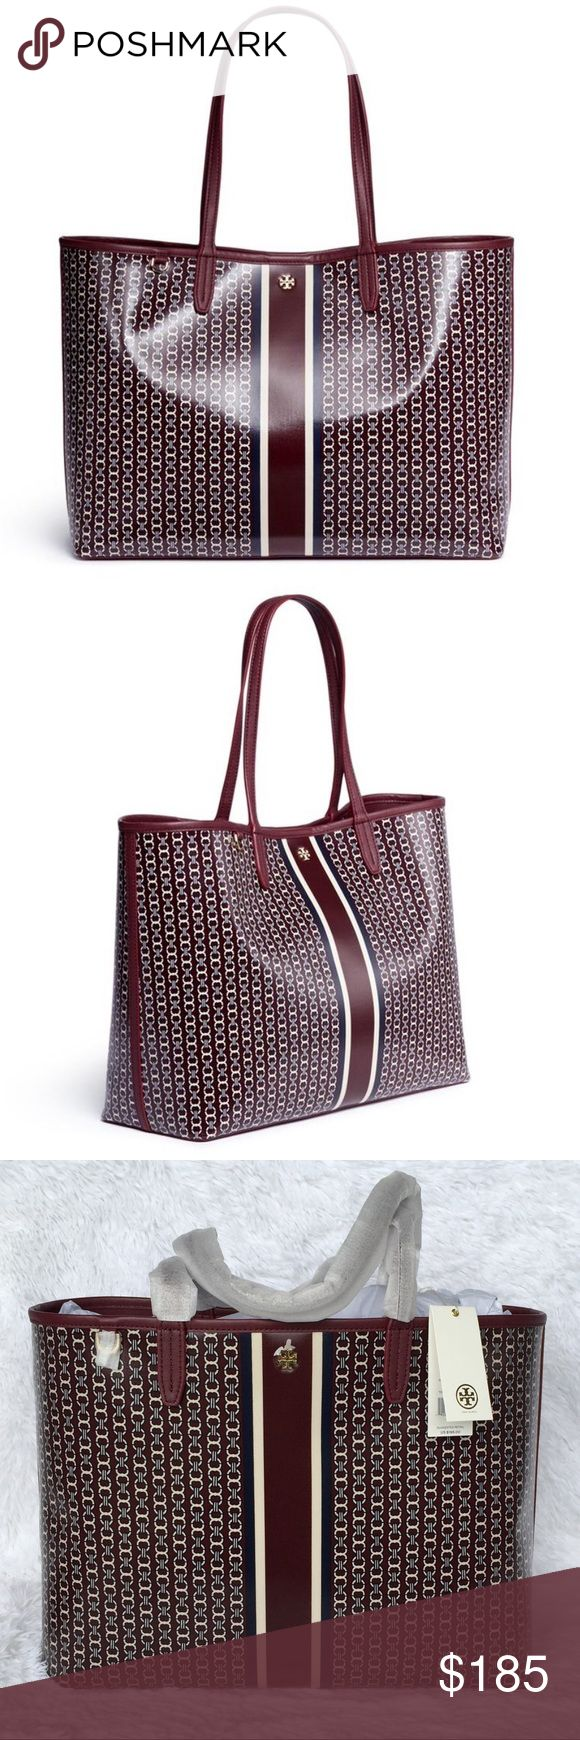 """NEW TORY BURCH GEMINI LINK TOTE BAG/PORT ROYAL Authentic. Brand new with tags.  Holds a 15"""" laptop, a pair of flats, a continental wallet, a small umbrella and an iPhone 6 Plus  Water-resistant coated canvas  Magnetic snap closure  Shoulder straps with 9.16"""" (23 cm) drop  1 interior hanging pocket Tory Burch Bags Totes"""